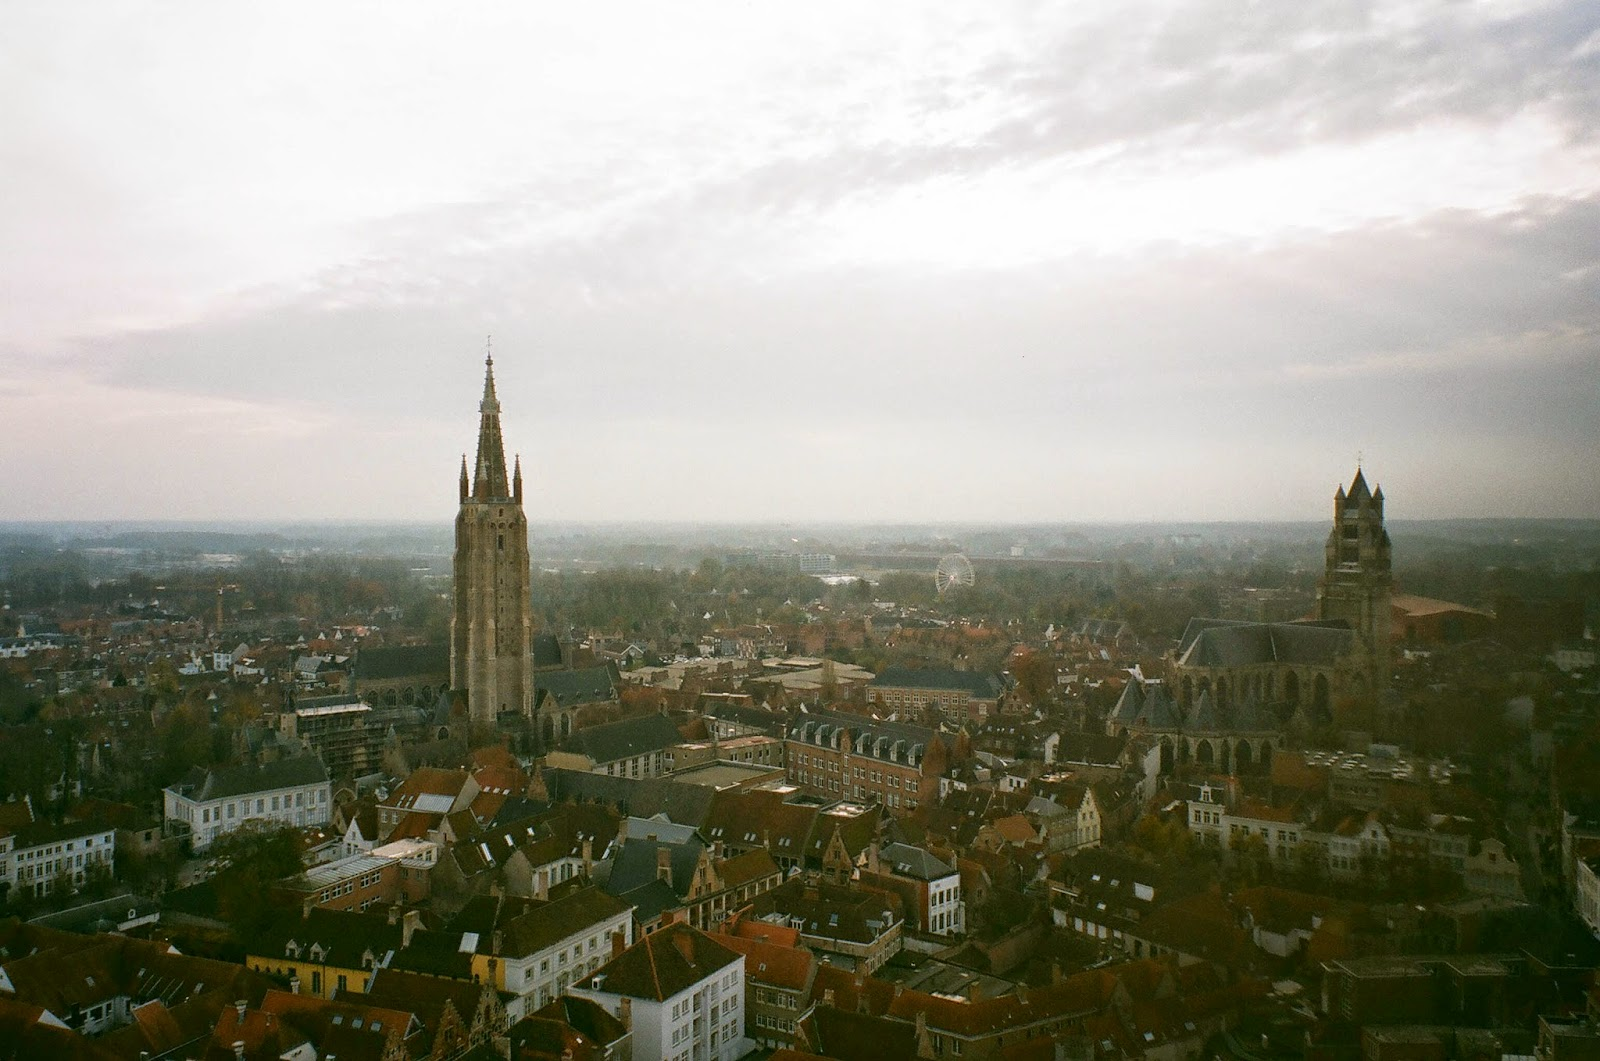 Belfry of Bruges tower view